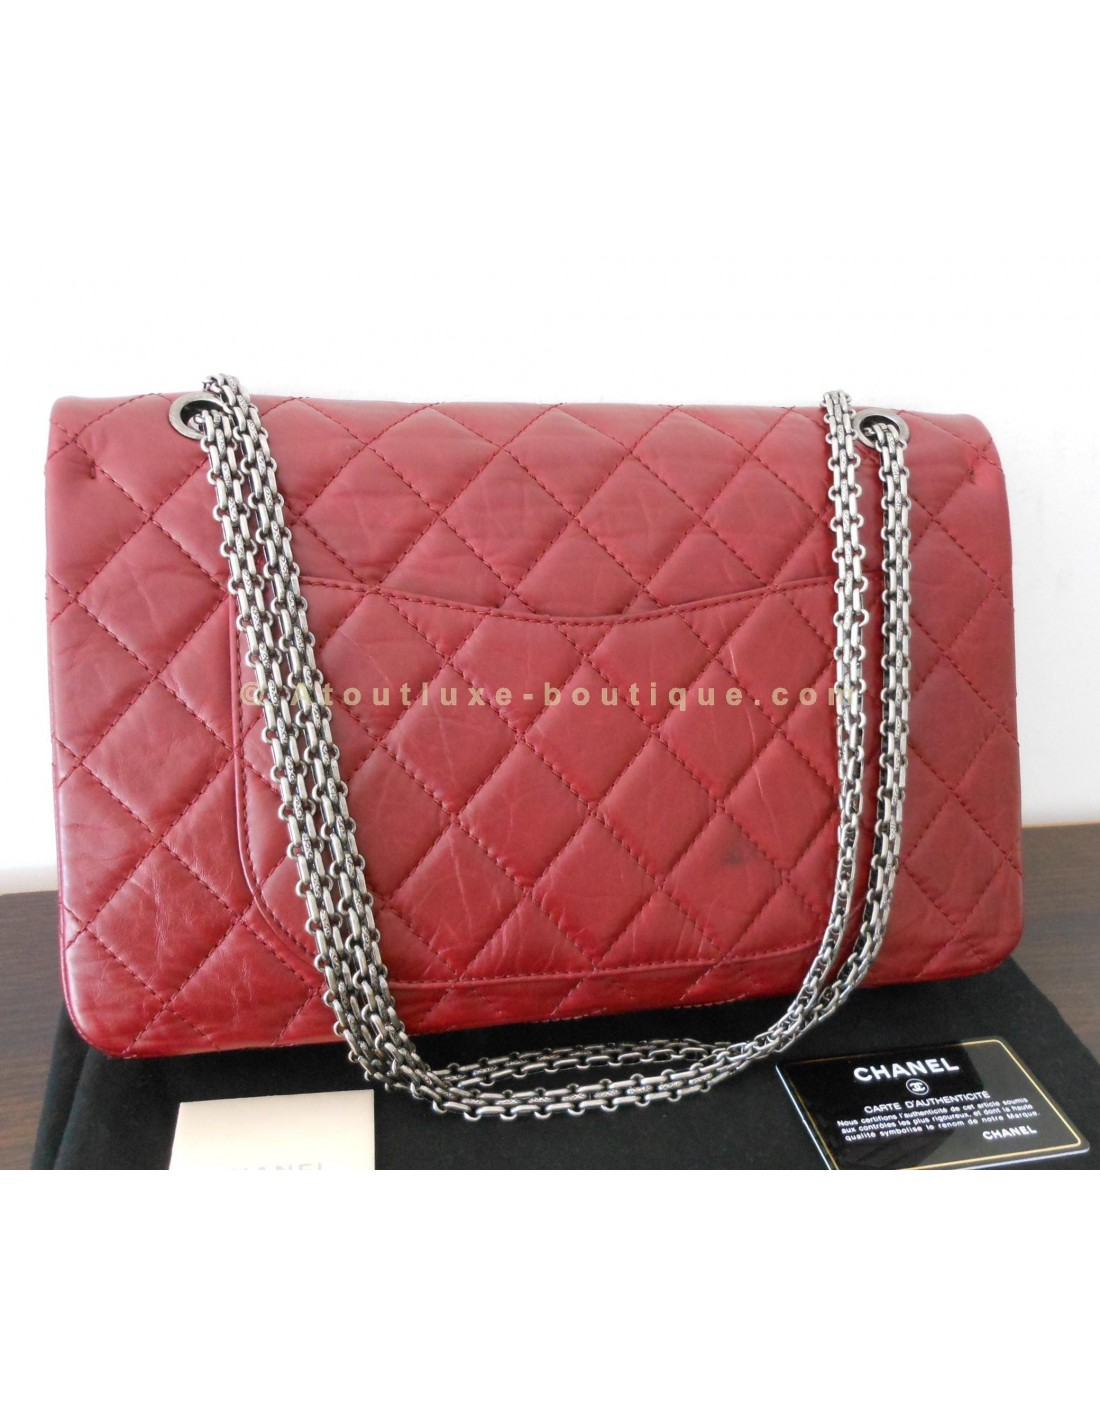 SAC CHANEL 2.55 JUMBO ROUGE BORDEAUX - Atoutluxe Boutique 56c337471e3